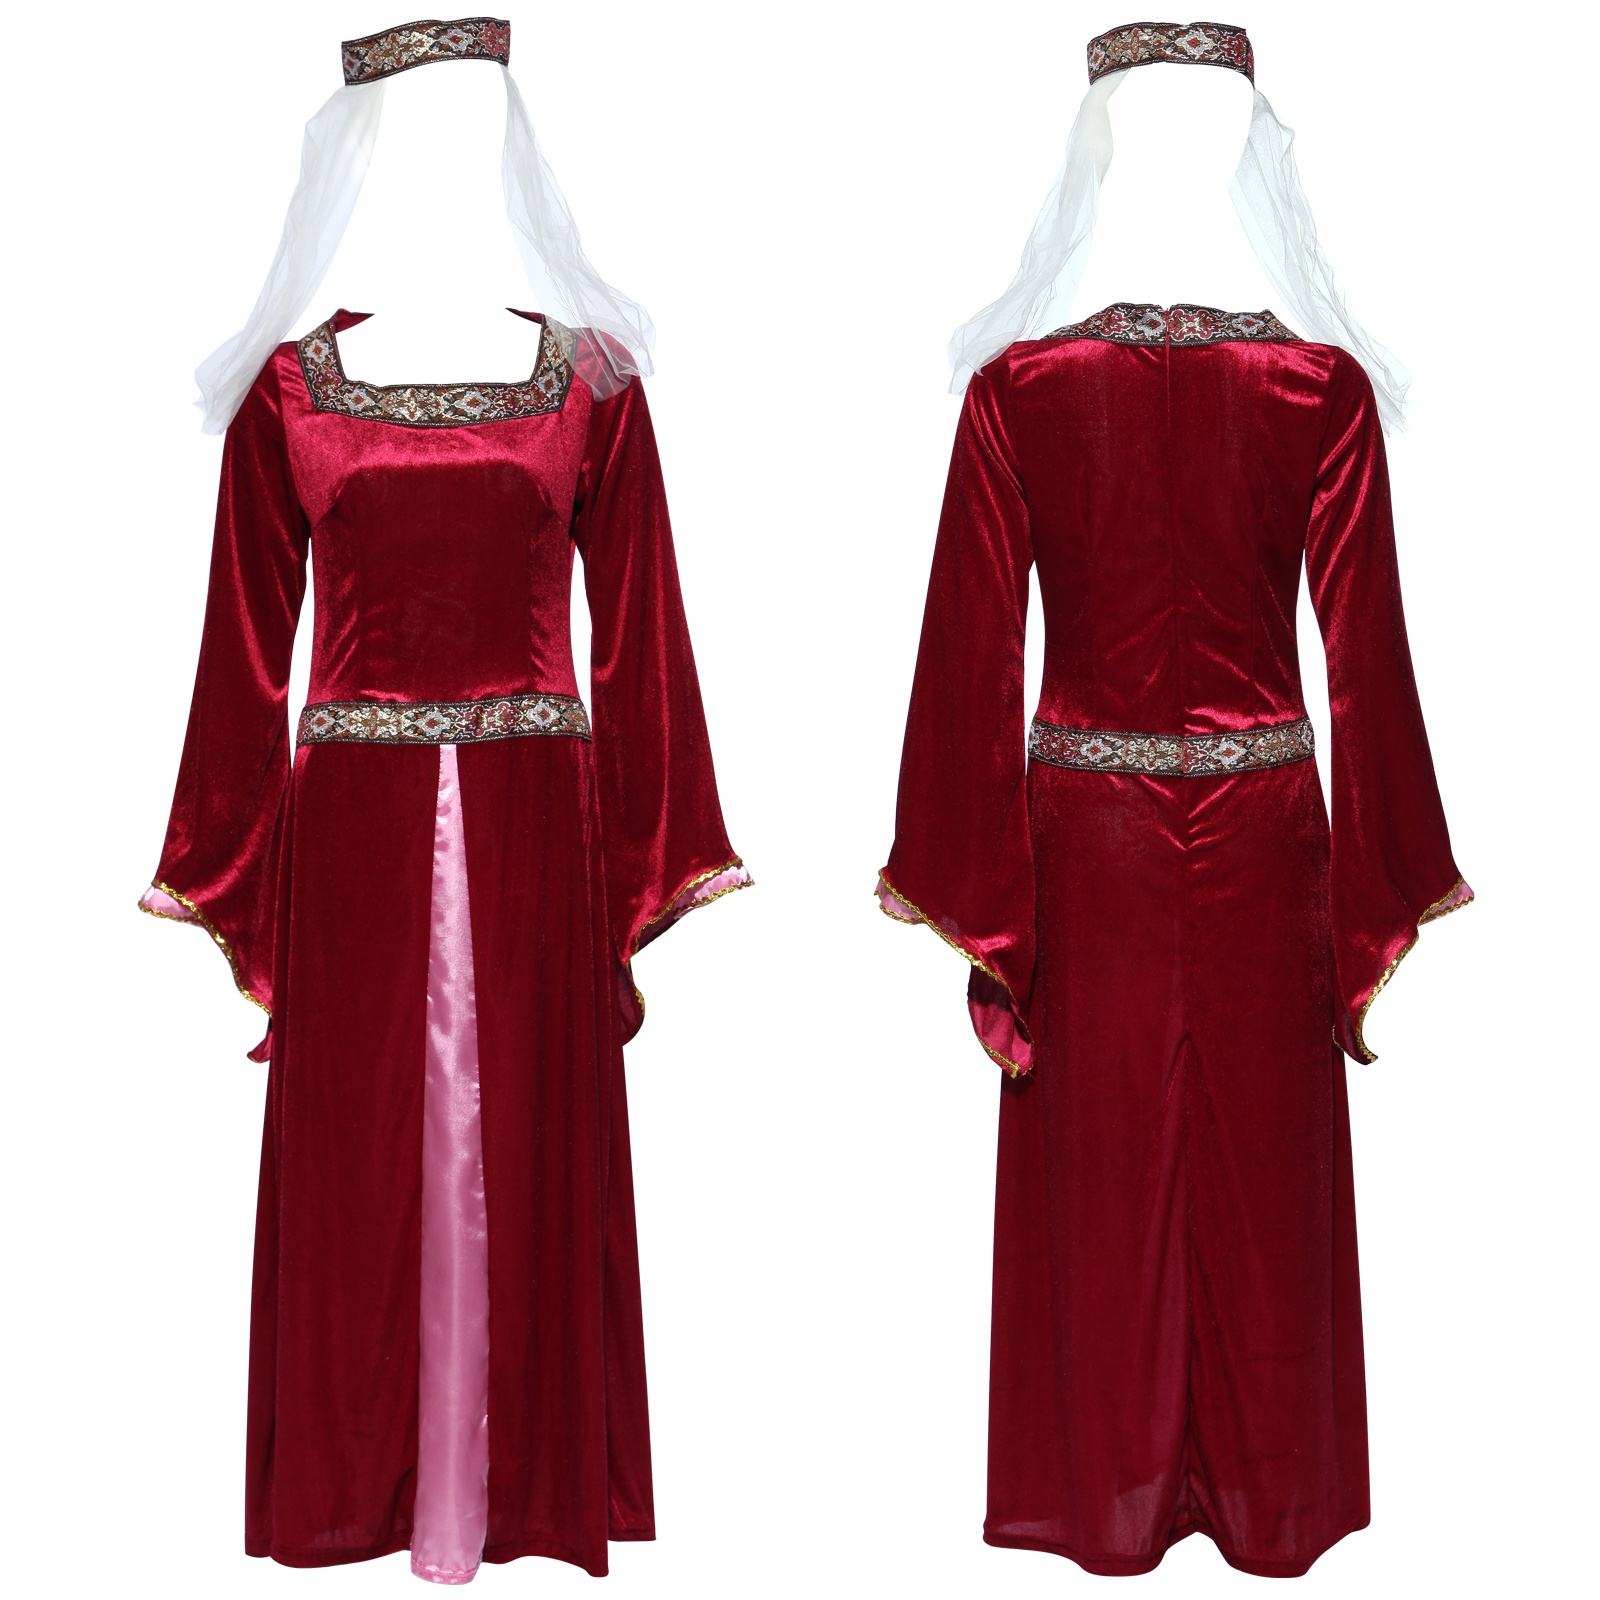 robe marion medieval moyen age renaissance d guisement costume femme halloween ebay. Black Bedroom Furniture Sets. Home Design Ideas